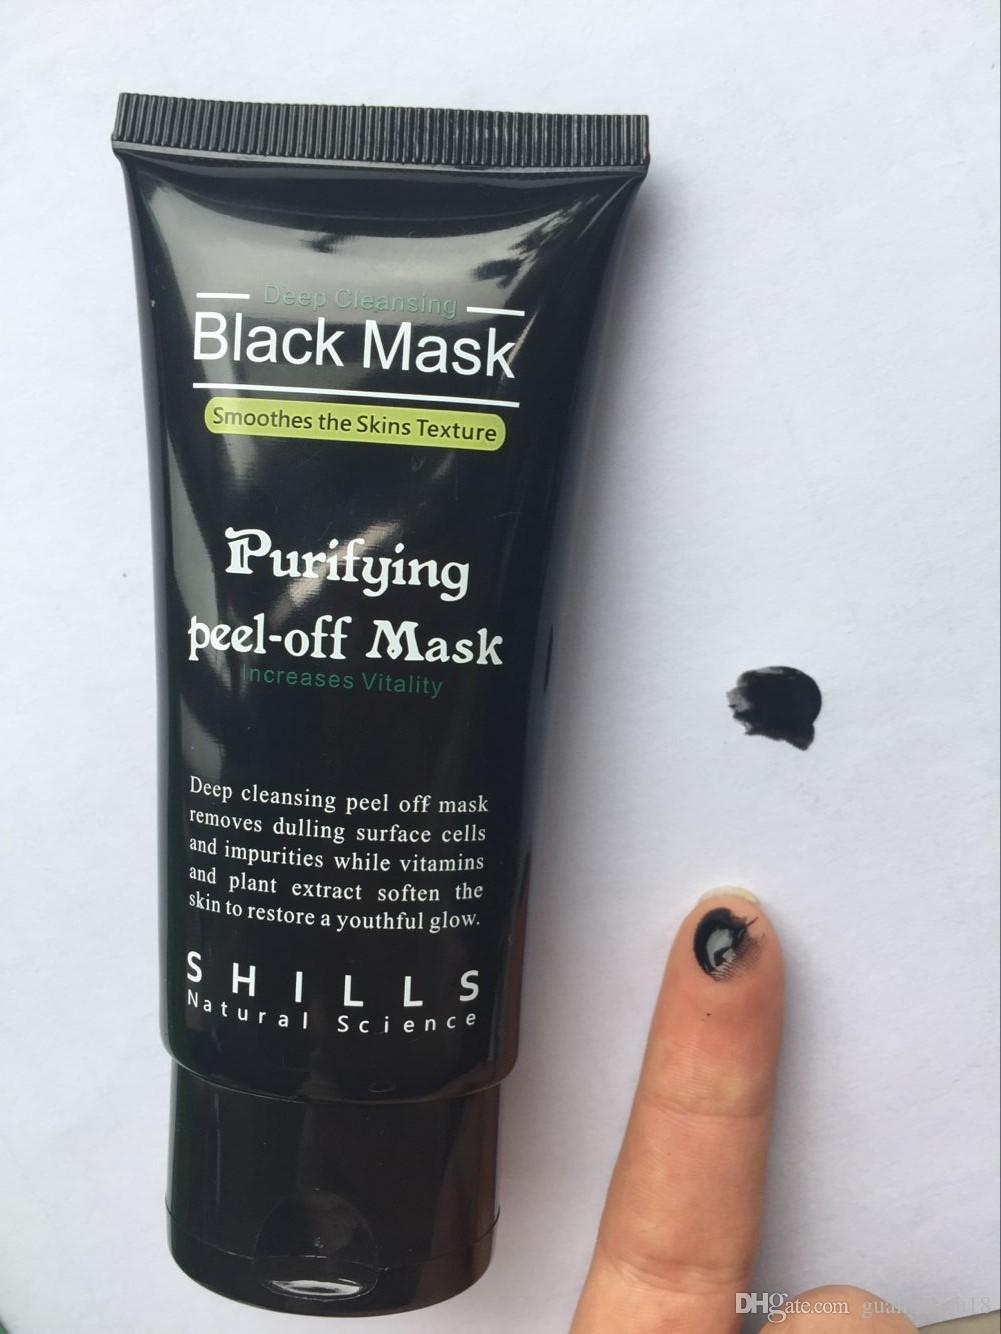 2017 Shills Masques pour le visage Peel-off Deep Cleansing Black MASK 50ML Blackhead Masque Facial Shills Deep Cleansing Black MASK